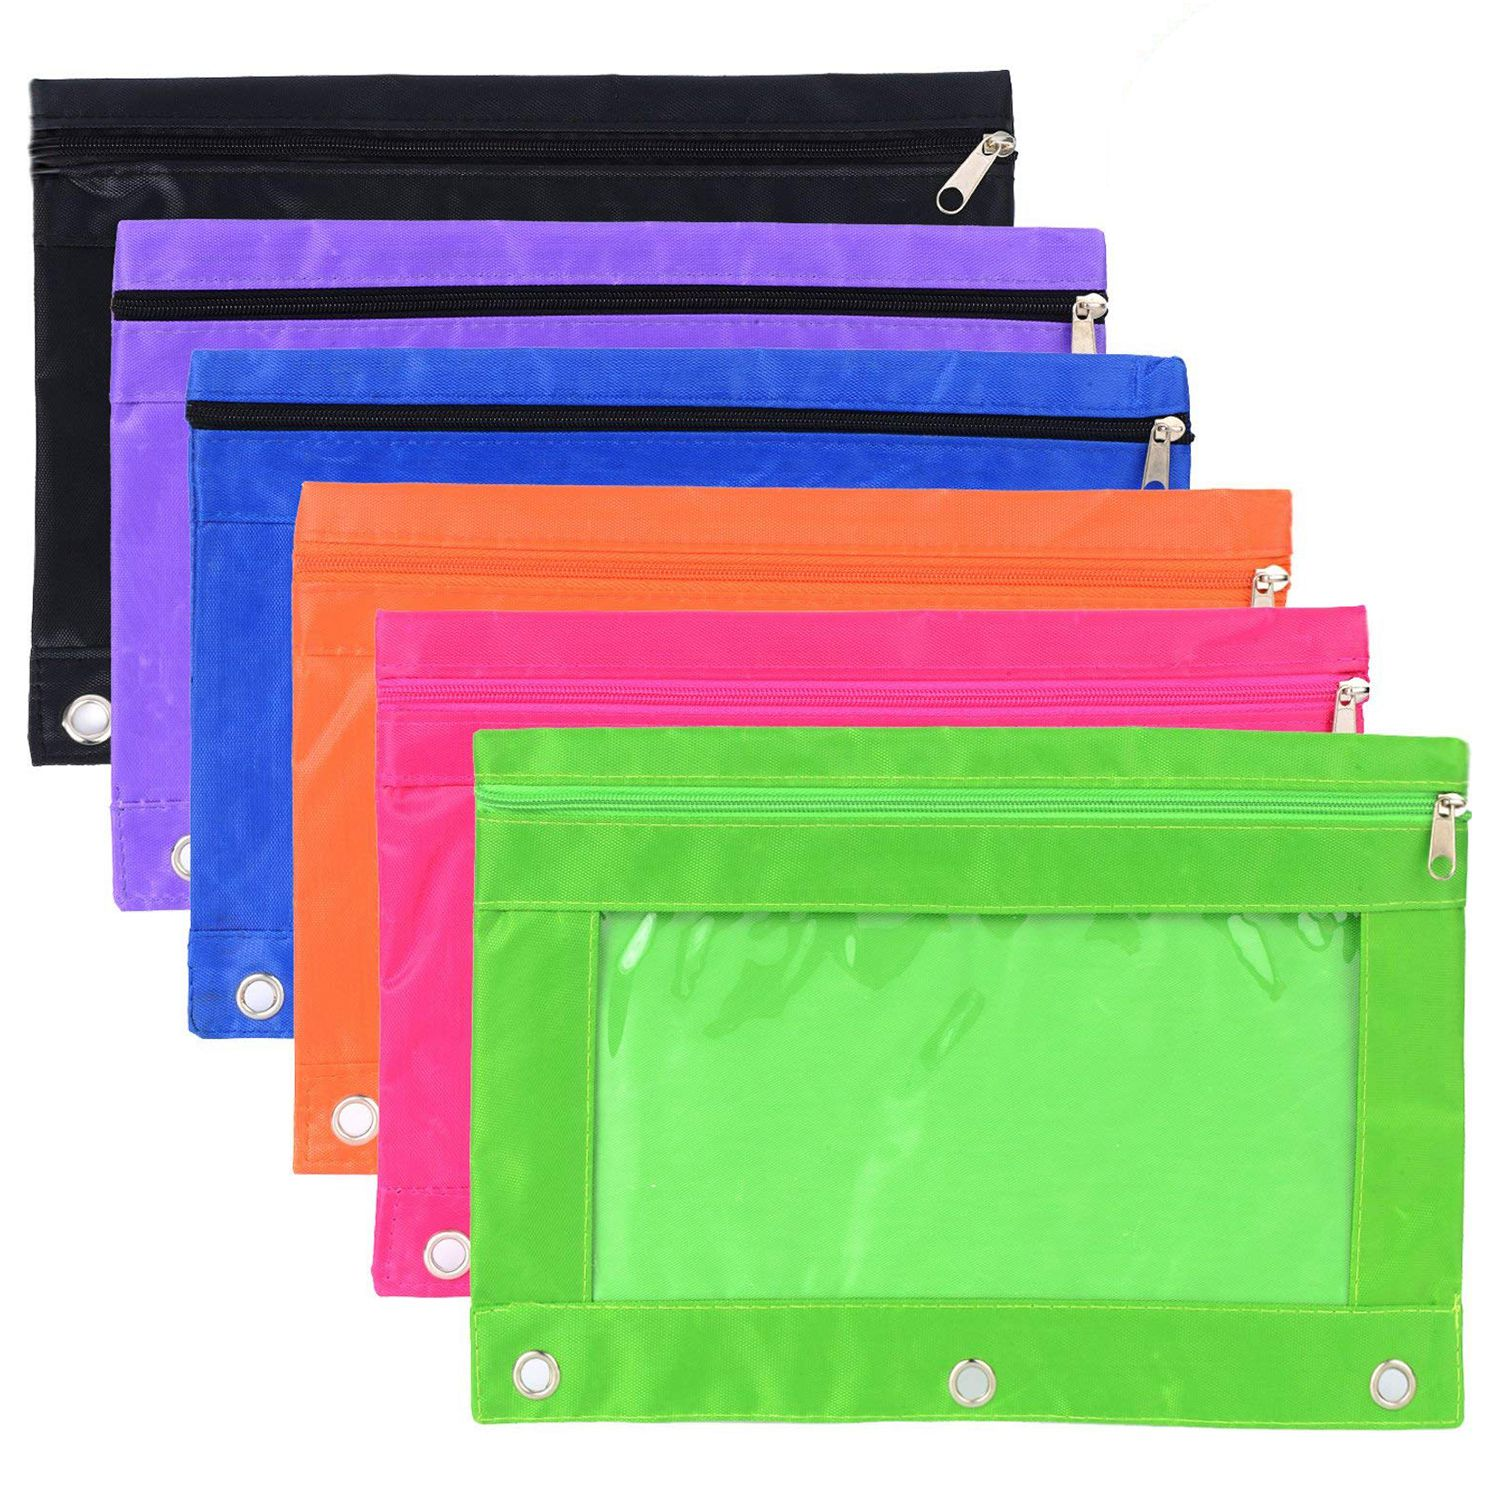 hot-6 Pieces Ring Binder Pouch Pencil Bag with Holes 3-Ring Zipper Pouches with Clear Window (6 Colors) clear wood handle bag with sequin pouch